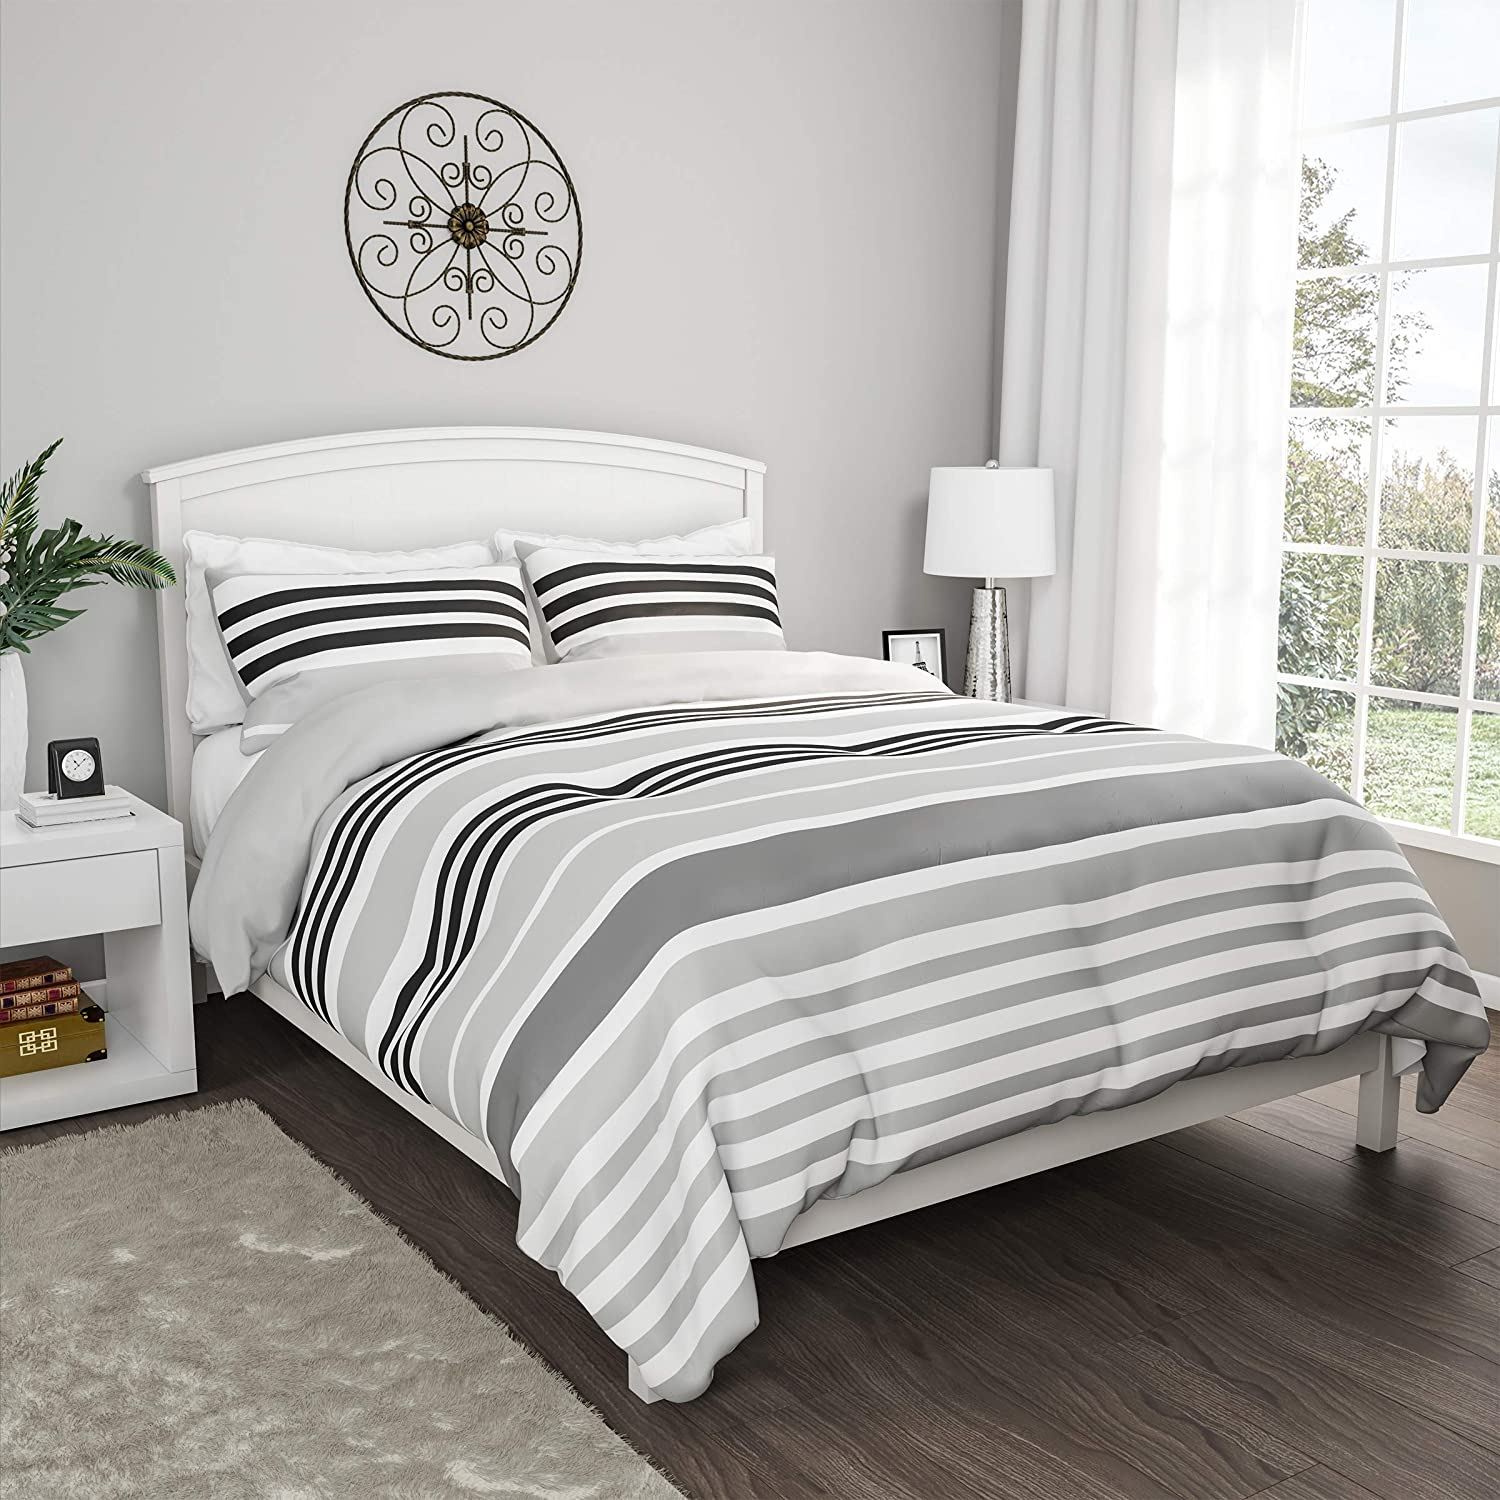 "Lavish Home Collection 3-Piece Comforter and Shams Set – ""Seaside Dawn"" Reversible, Hypoallergenic and Soft Microfiber Striped Down Alternative Bedding (King)"